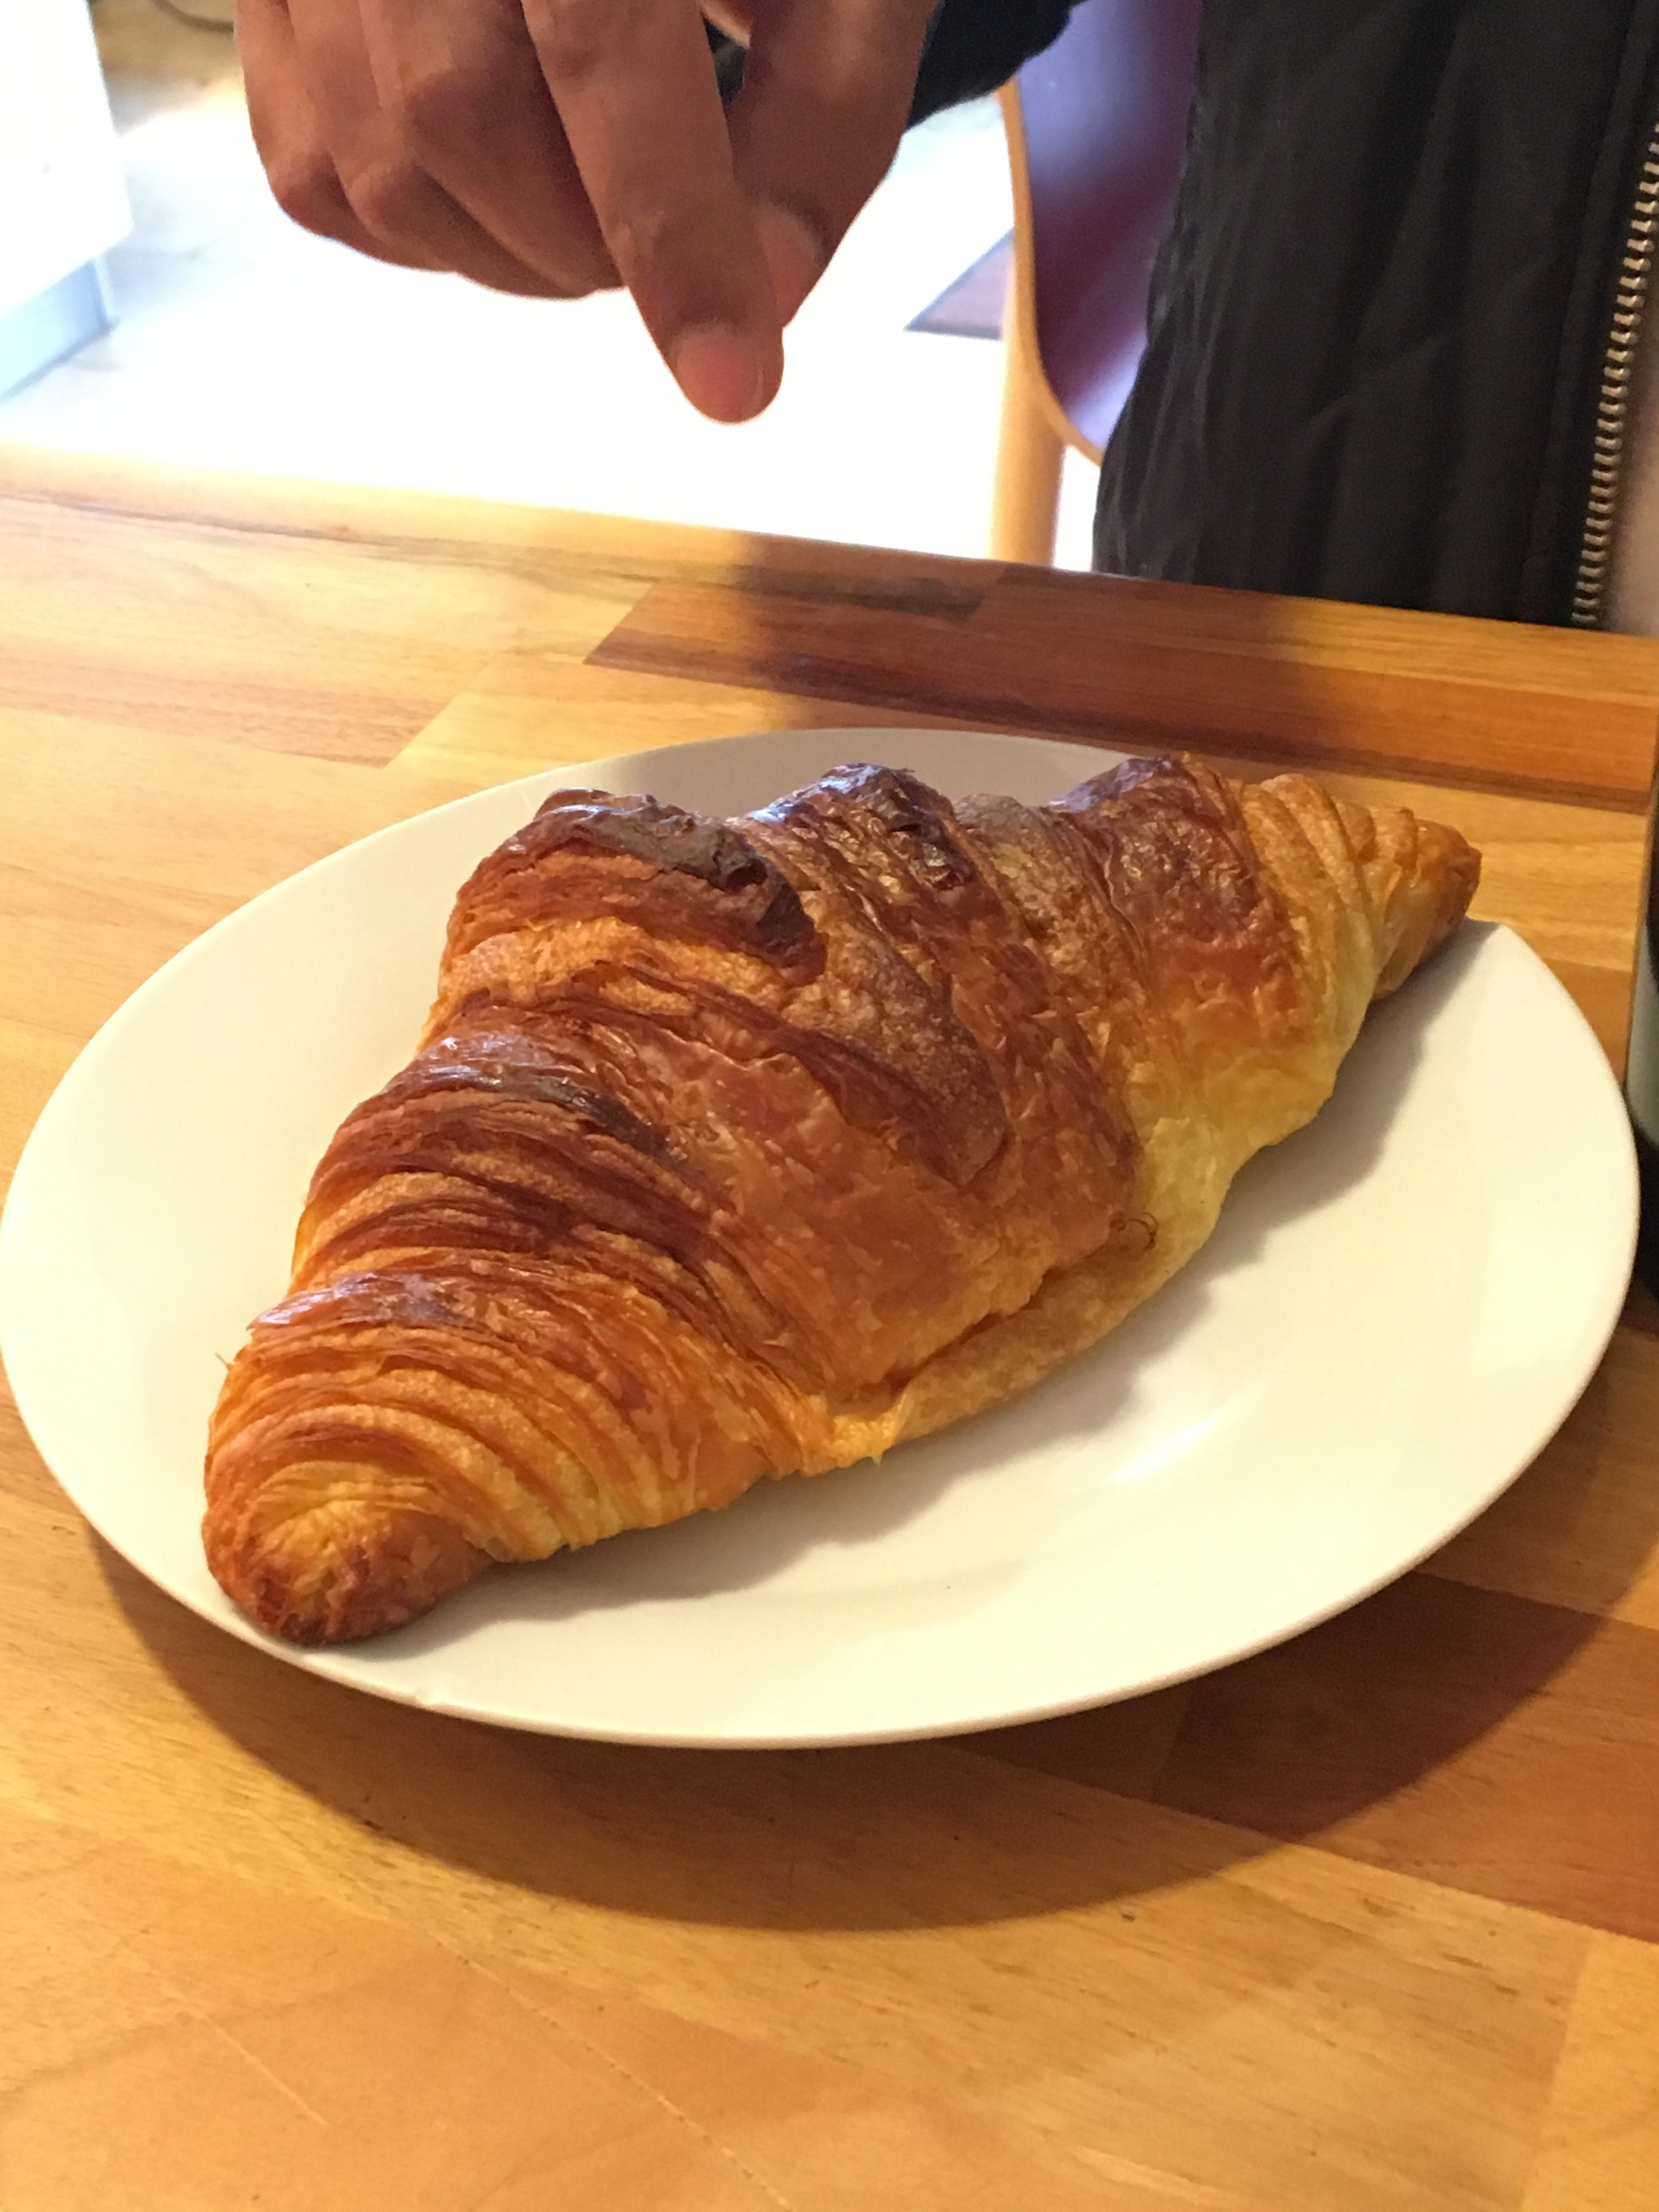 The purest test for a bakery is a plain butter croissant.